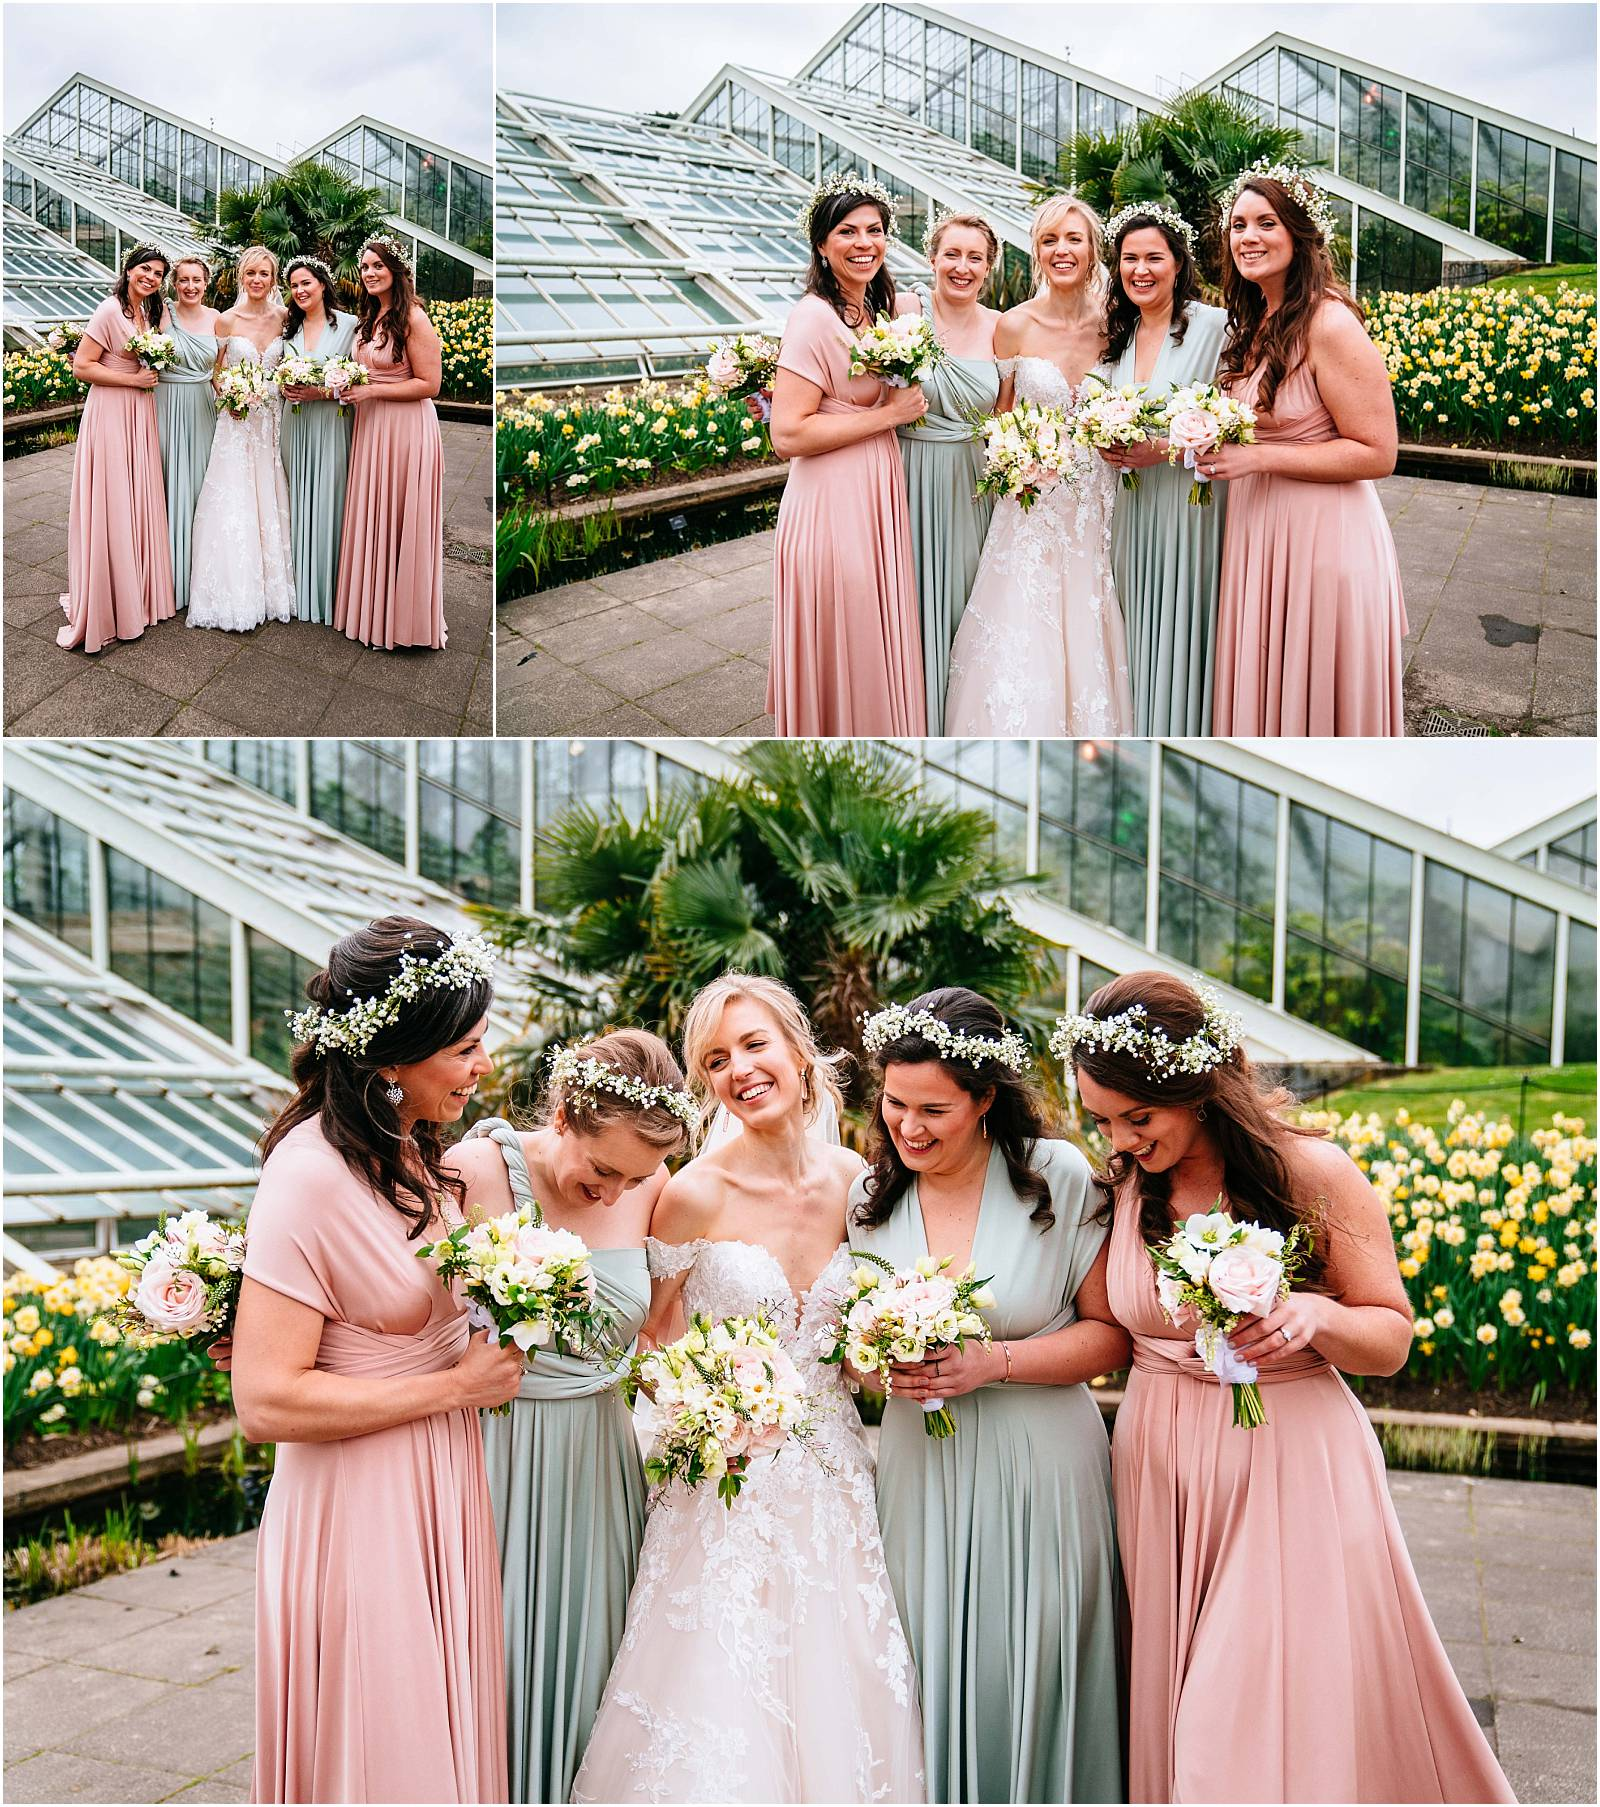 Bridesmaids photographs at kew garden